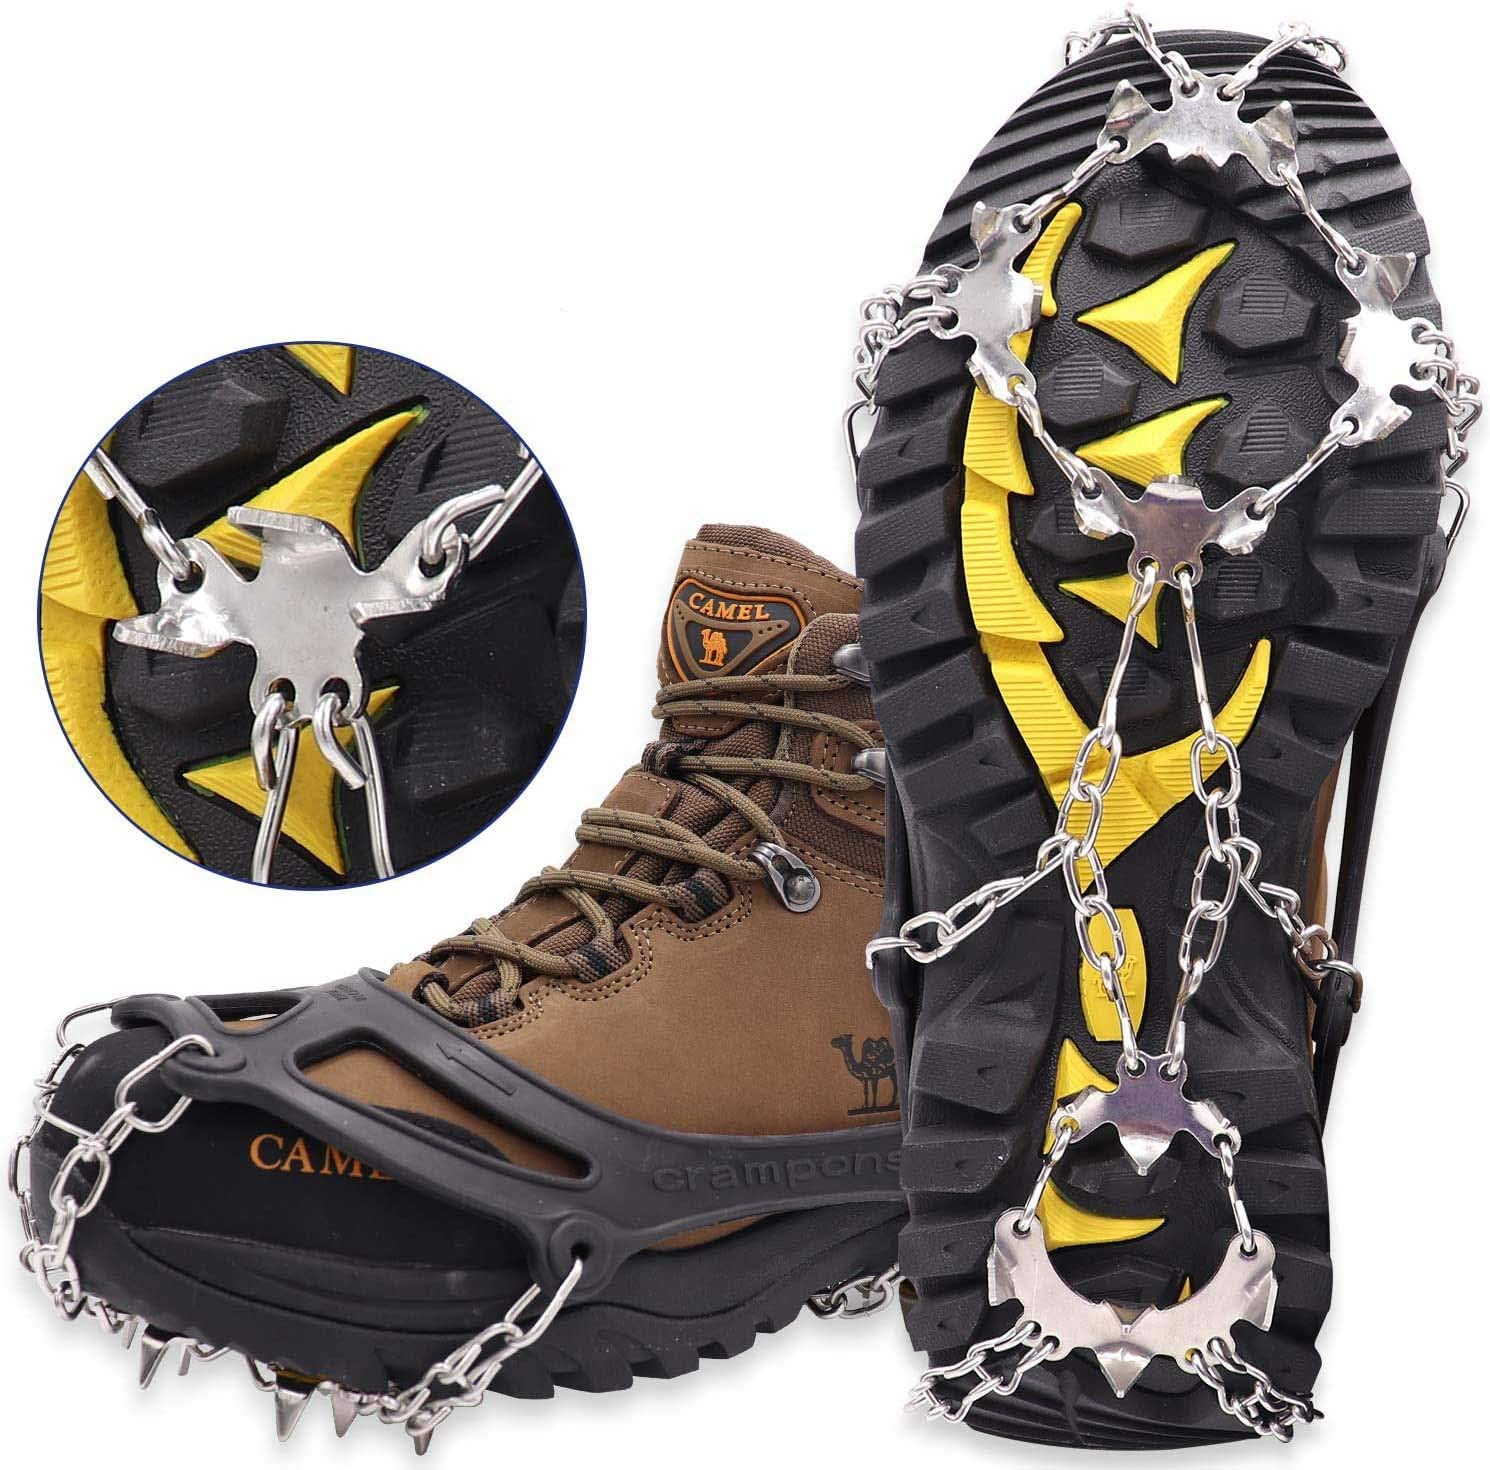 Marwey Crampons Ice Snow Grips Traction